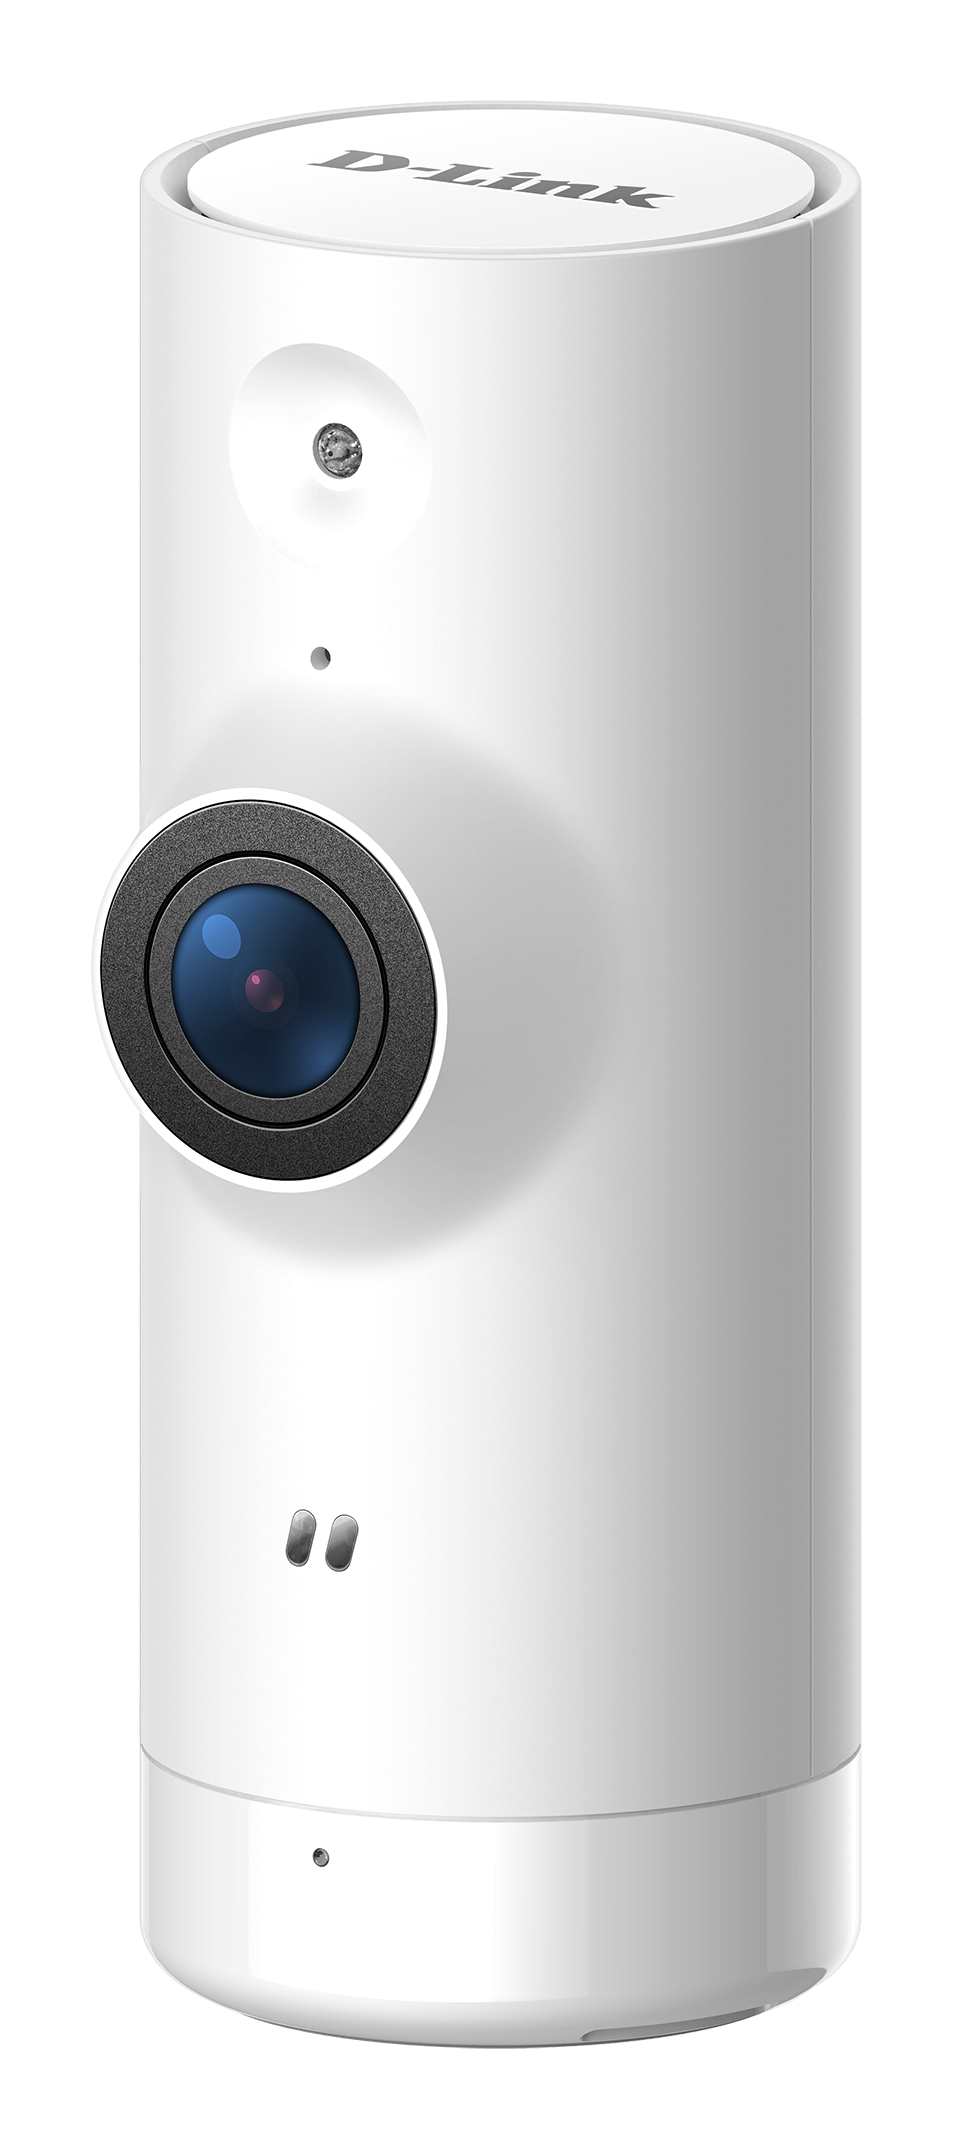 D-Link DCS-8000LHV2 Mini Full HD Wi-Fi Camera